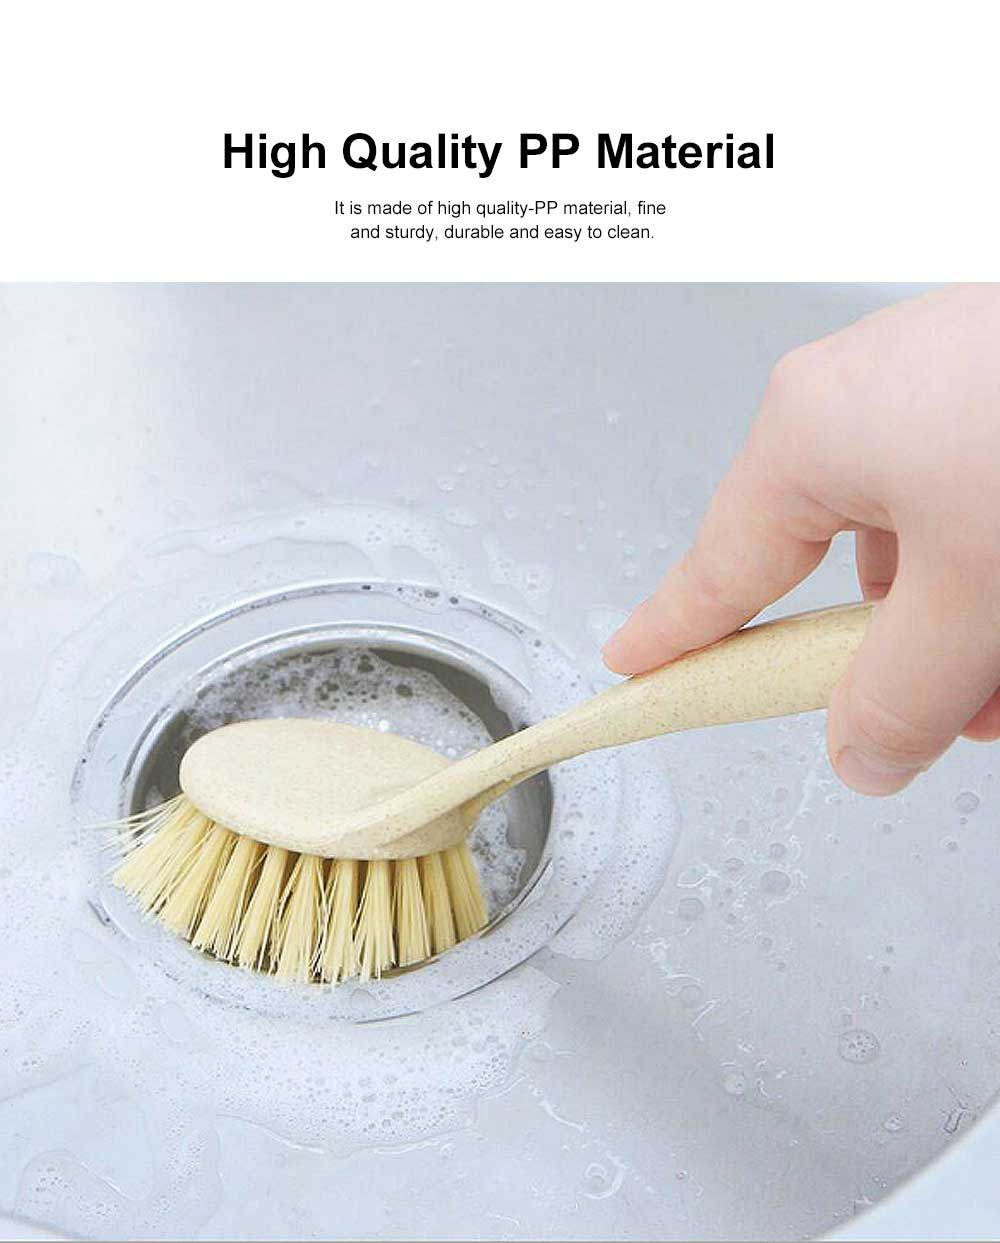 Long Handle Brush, Household Brush for Washing Non-stick Pan, Stove, Plastic Decontamination Cleaning Brush 3